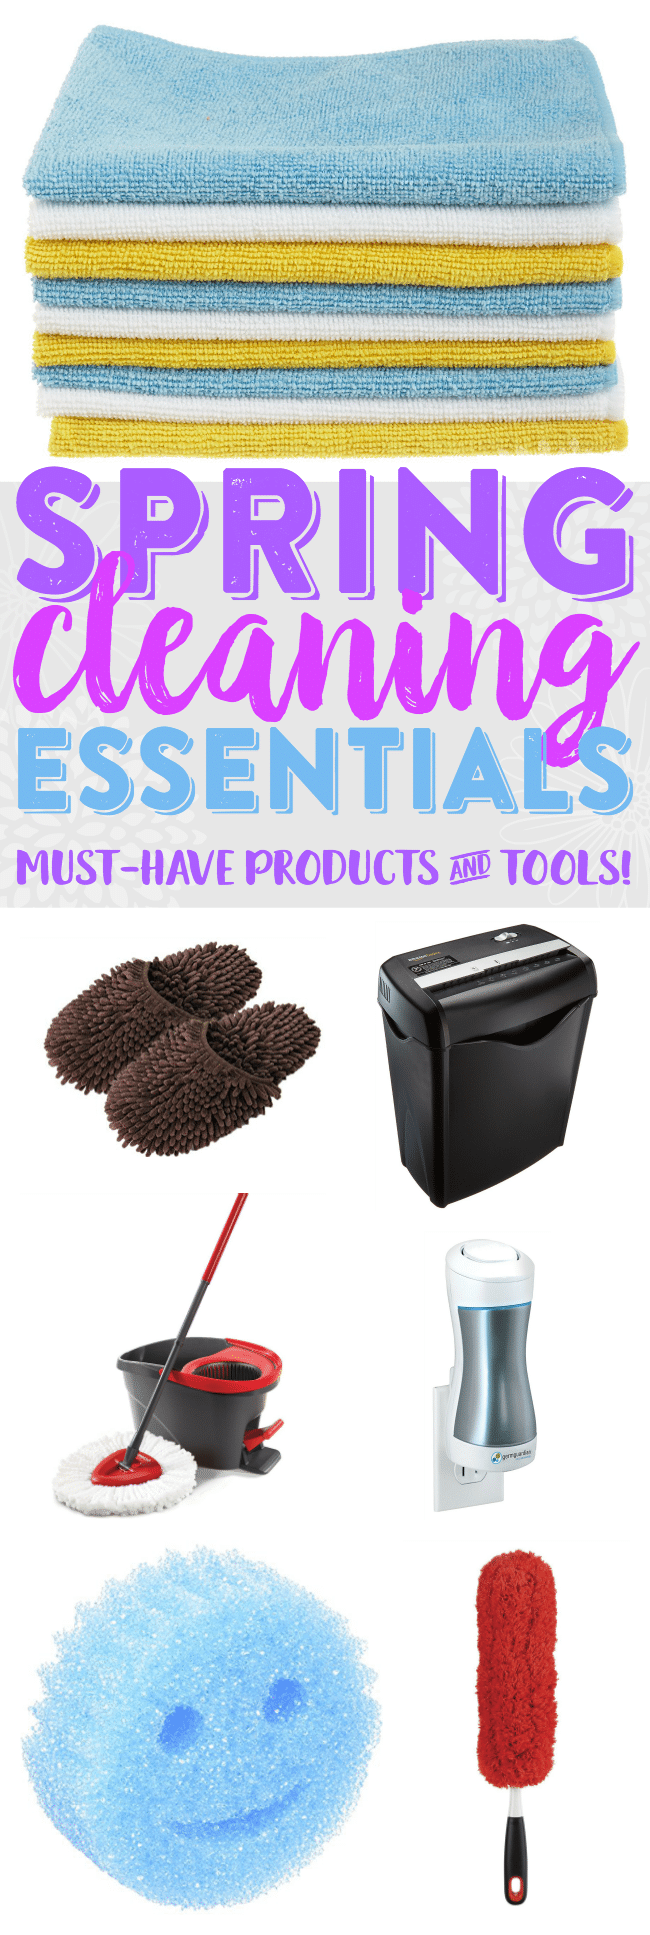 Spring Cleaning Essential Products | Cleaning Tools and Tips | Spring Cleaning and Organization Must-Haves